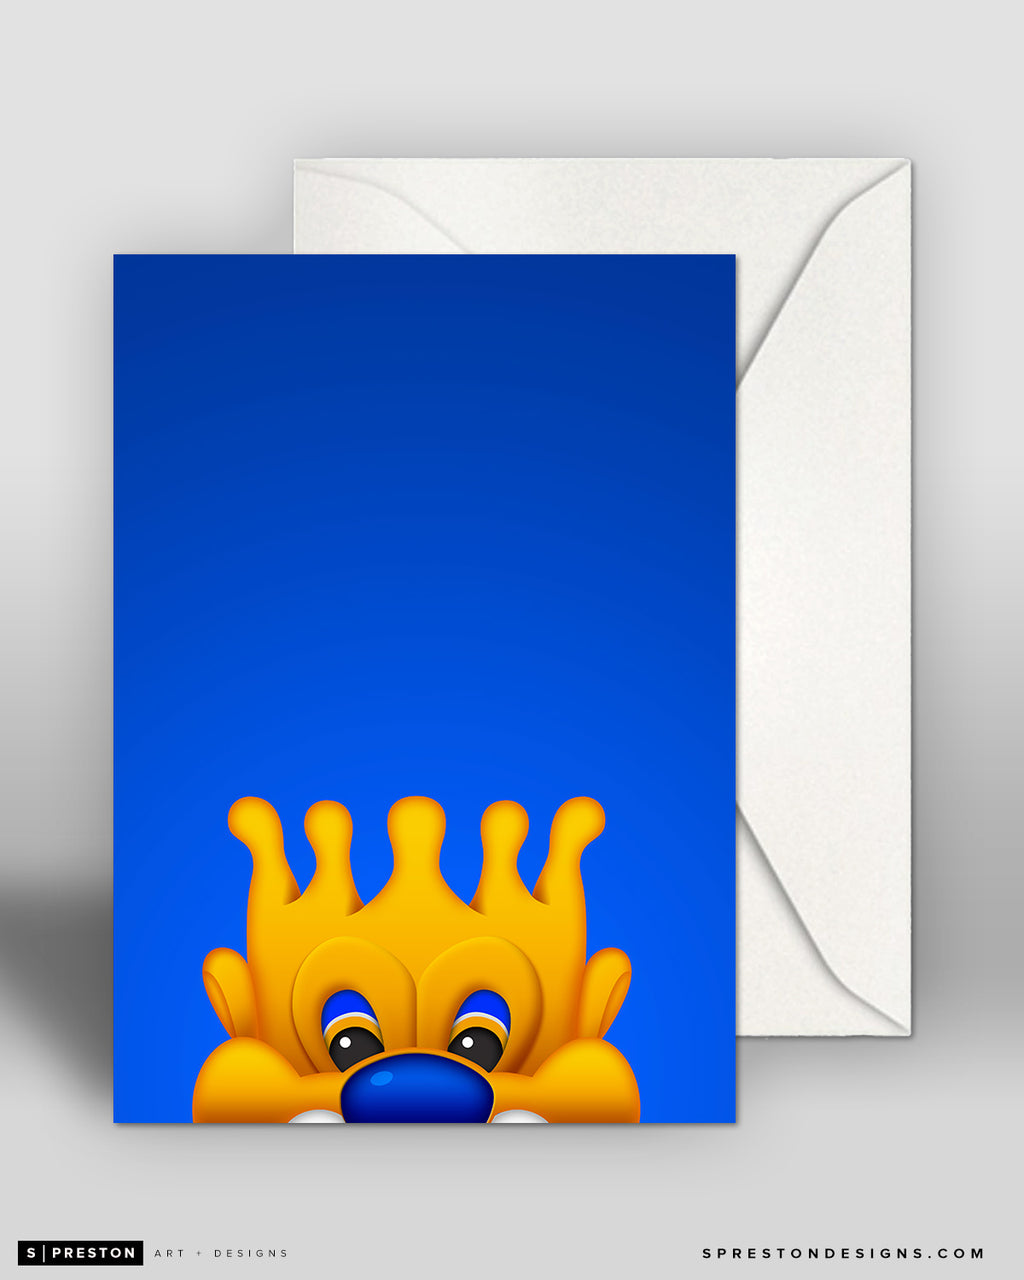 Minimalist Sluggerrr Notecard Notecards - Kansas City Royals - S. Preston Art + Designs